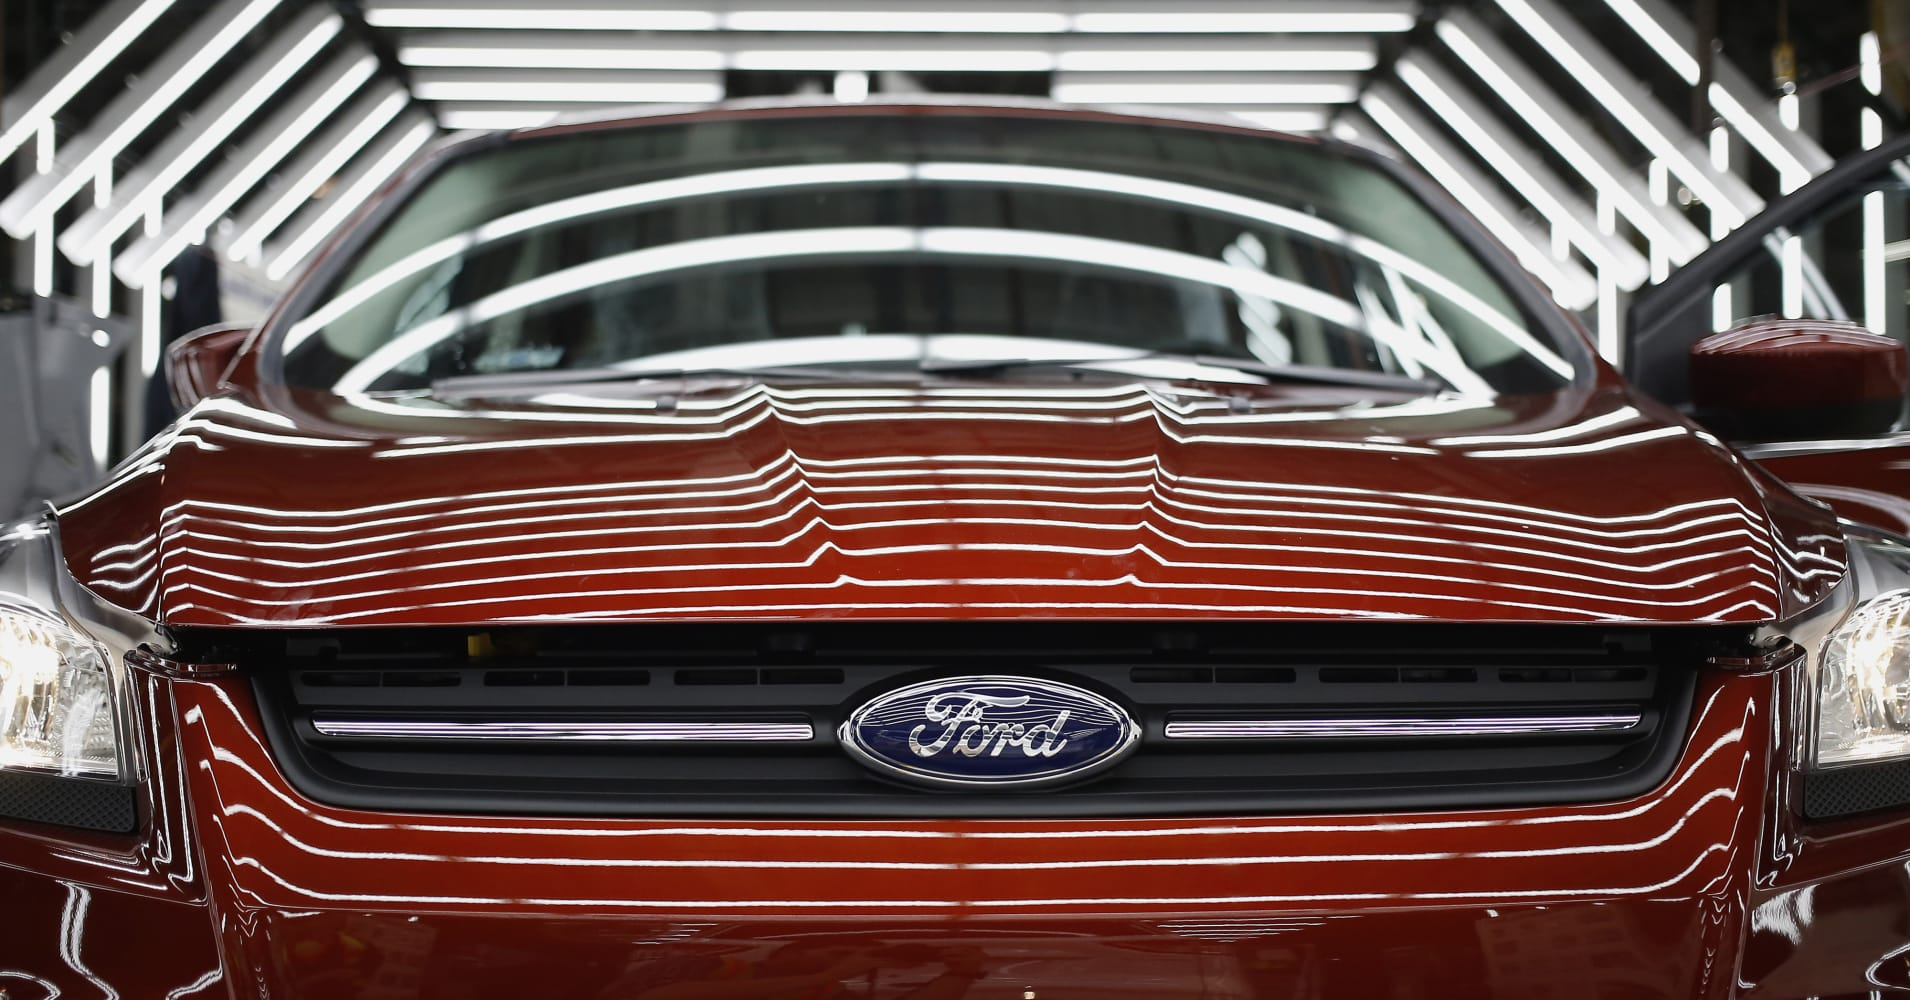 A ford escape sports utility vehicle suv undergoes final inspection during production at the